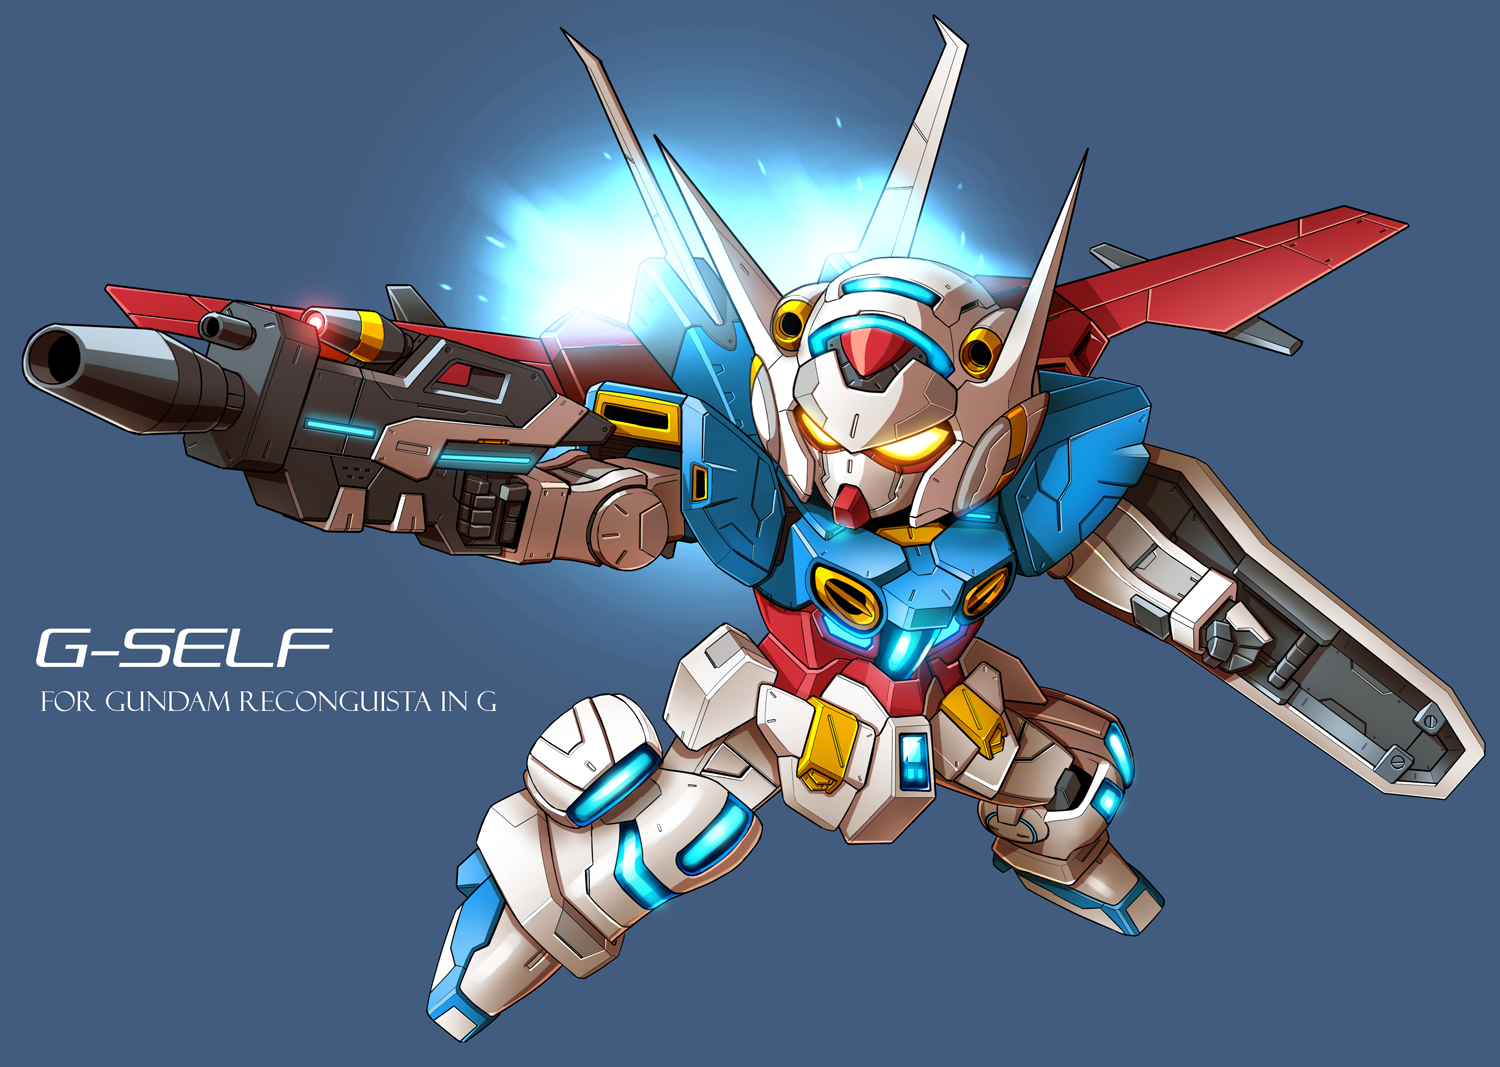 SD Gundam Wallpaper Images   Gundam Kits Collection News 1500x1067